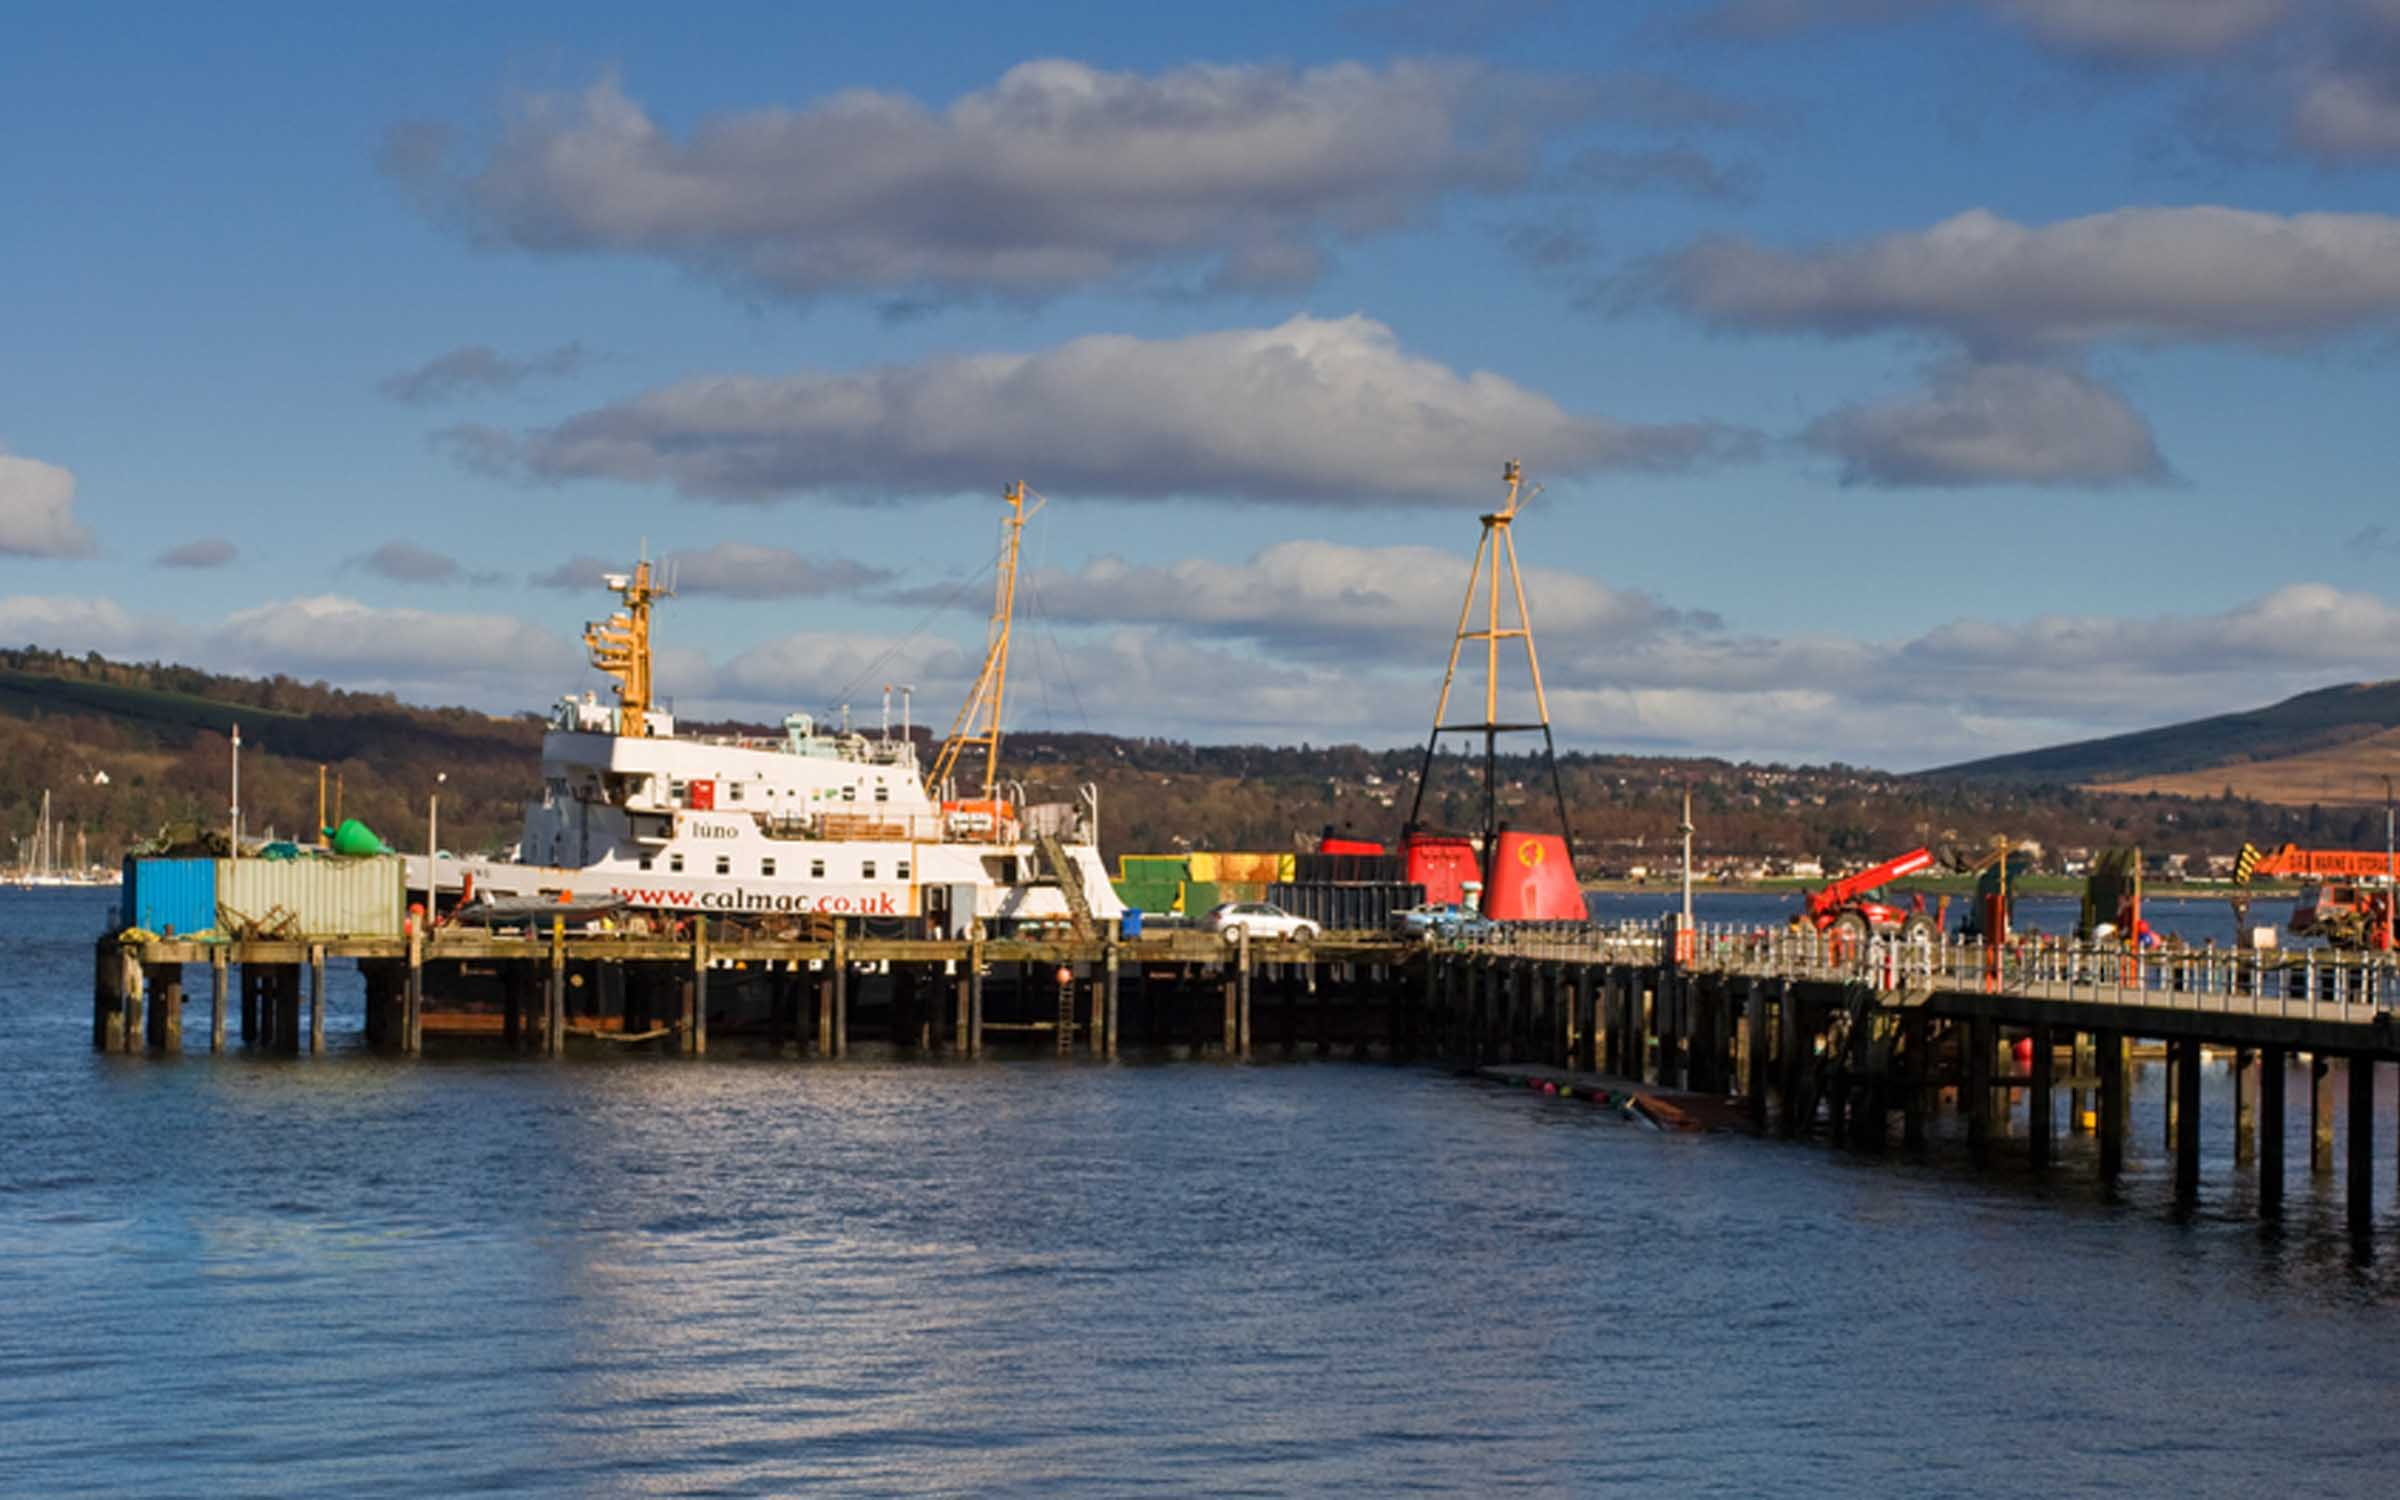 Juno with Saturn at Rosneath (Ships of CalMac)